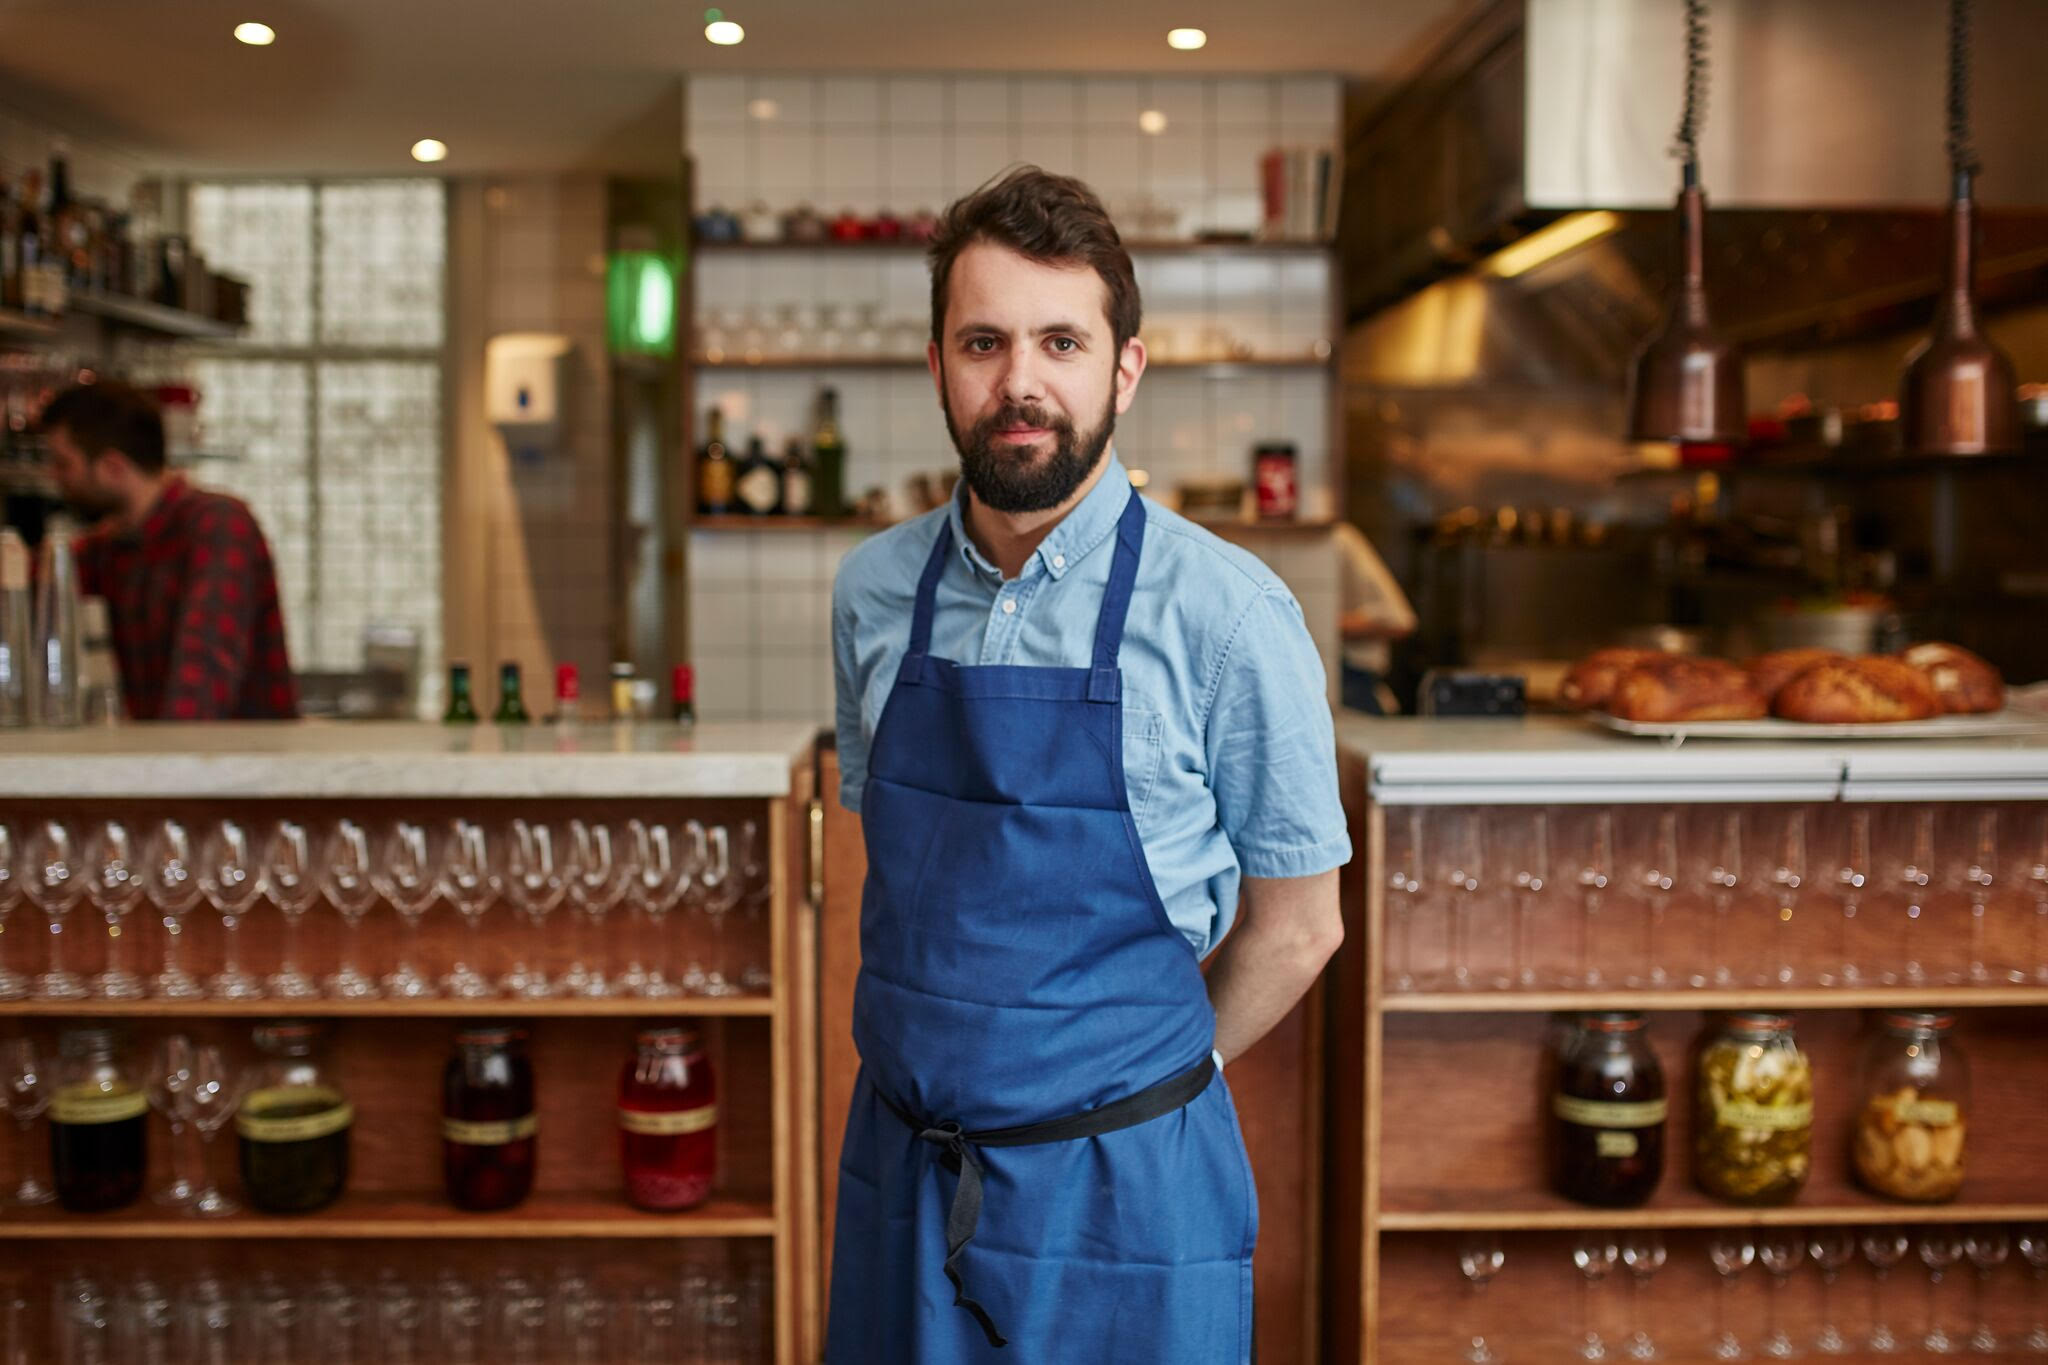 Chef Merlin Labron-Johnson, who will depart his debut London Michelin star restaurant Portland in search of a new restaurant